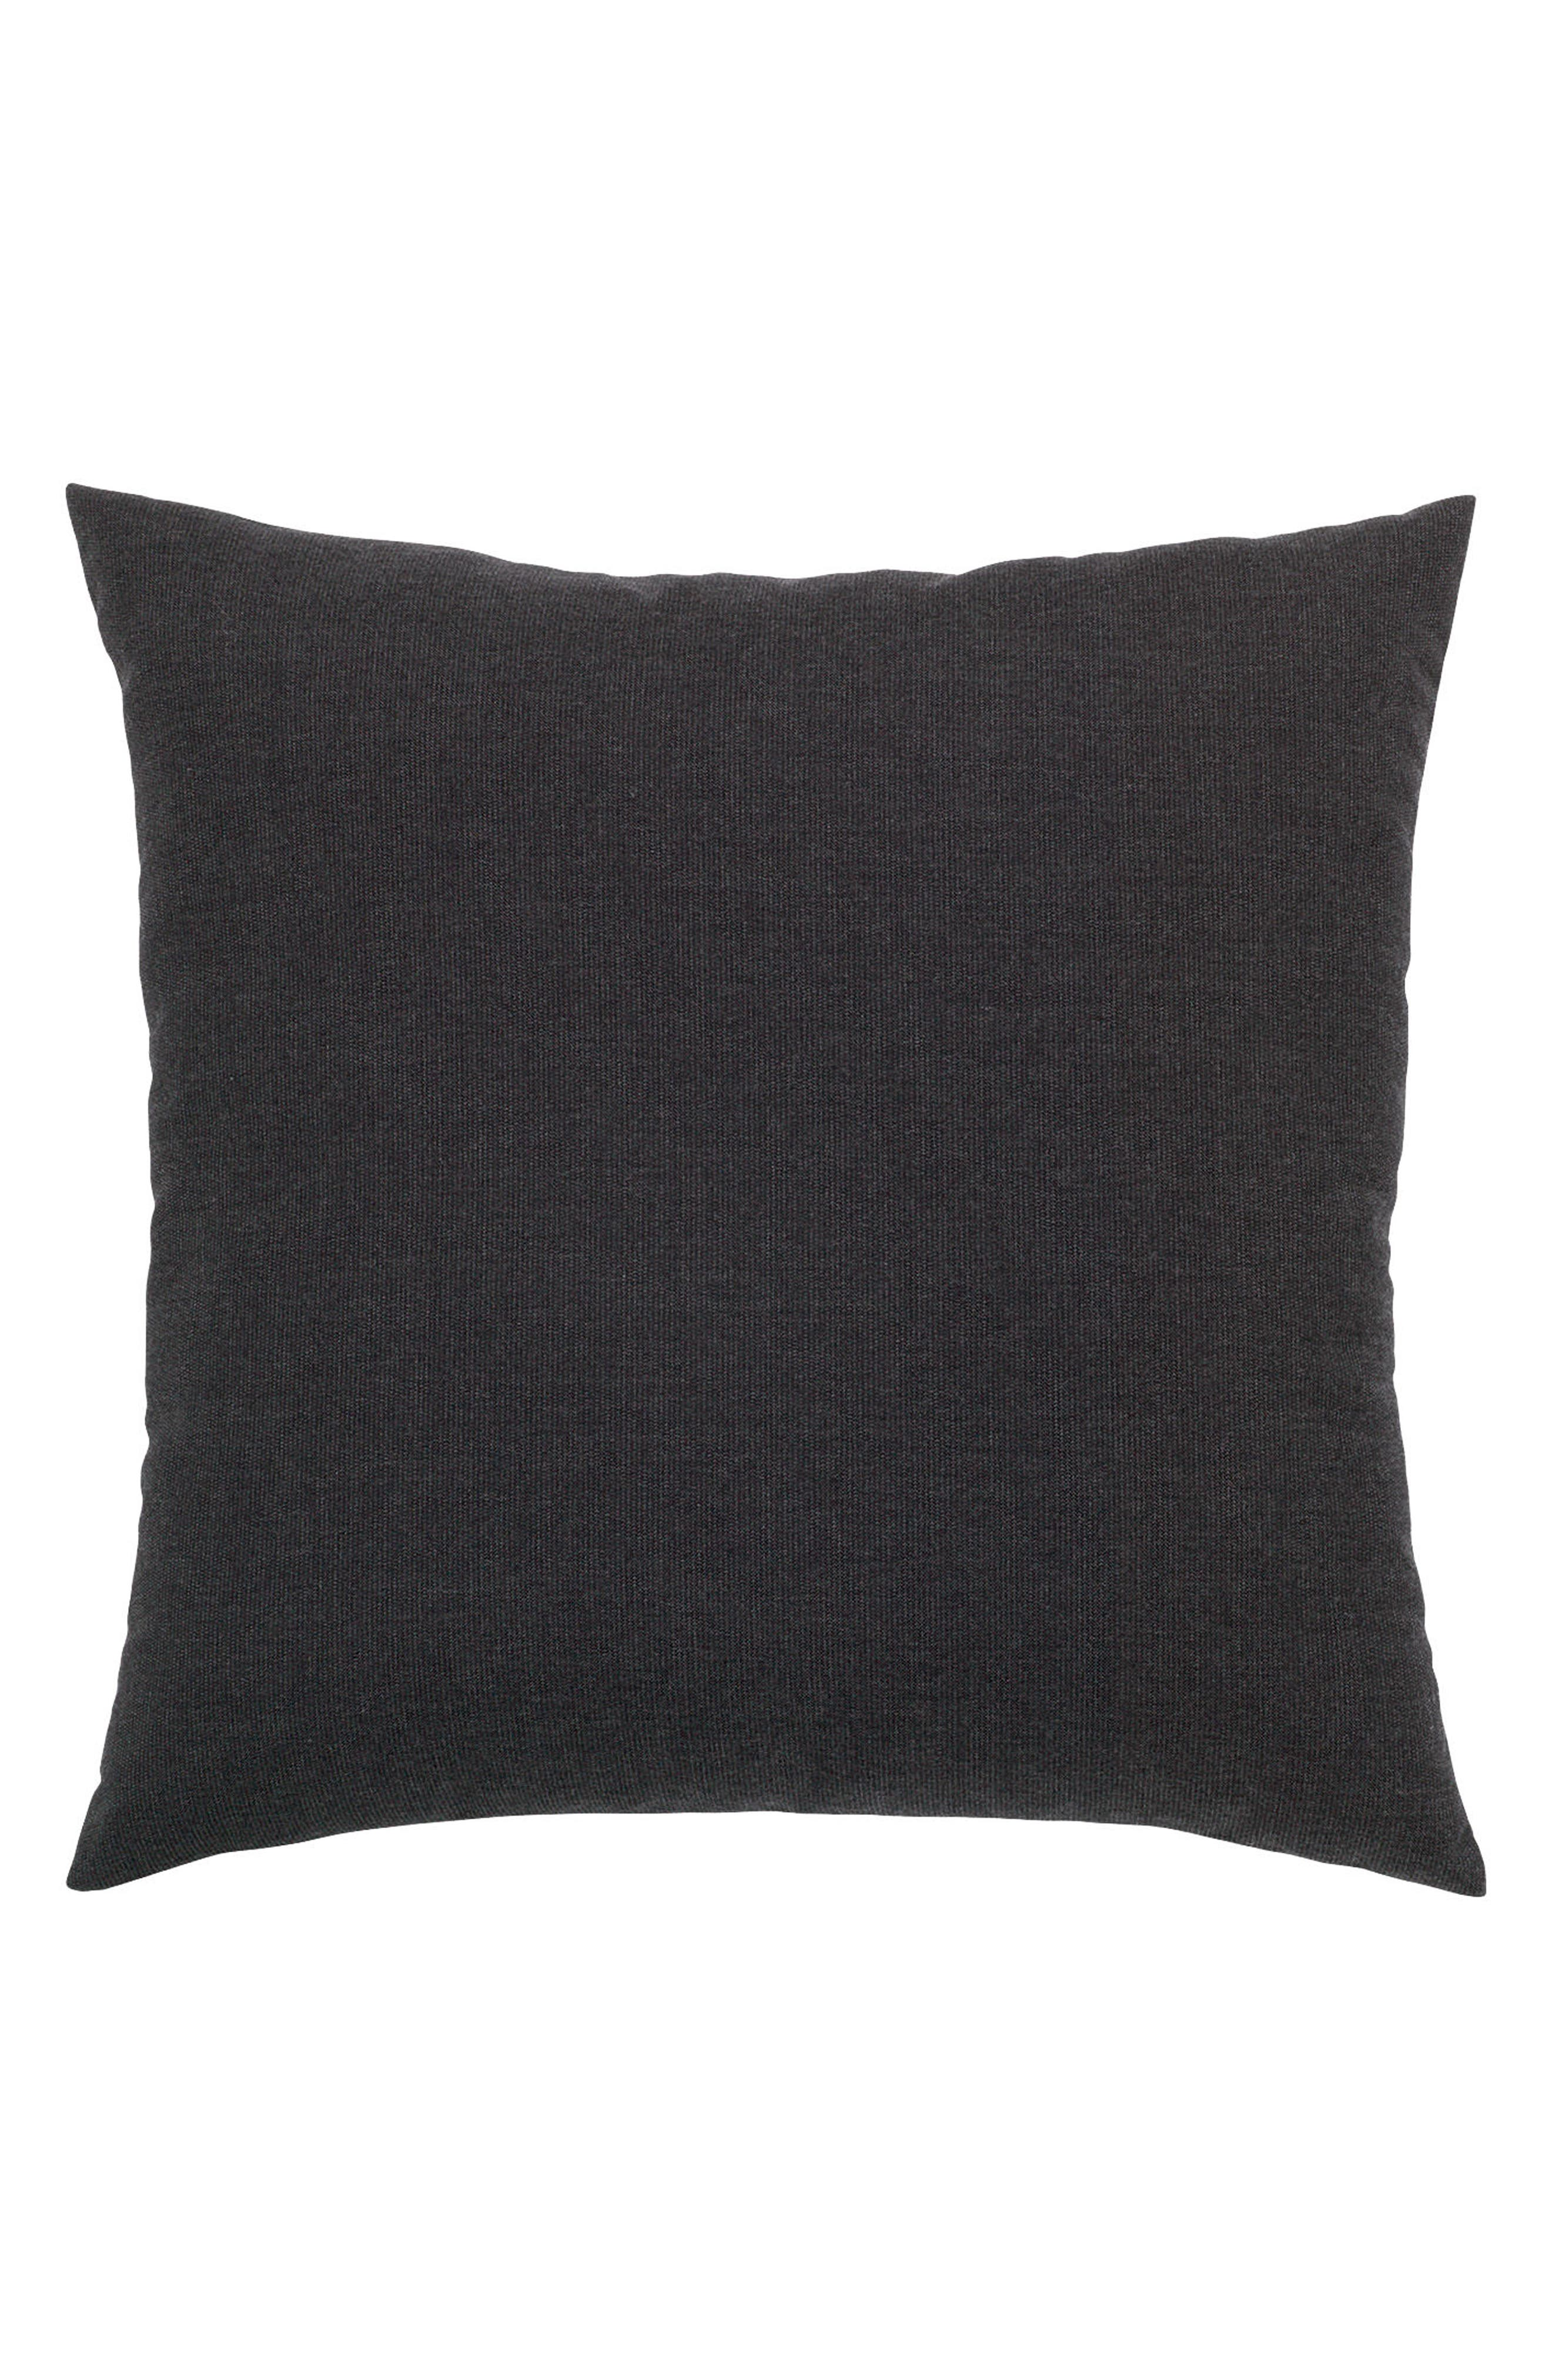 Golden Deco Indoor/Outdoor Accent Pillow,                             Alternate thumbnail 2, color,                             Black Multi